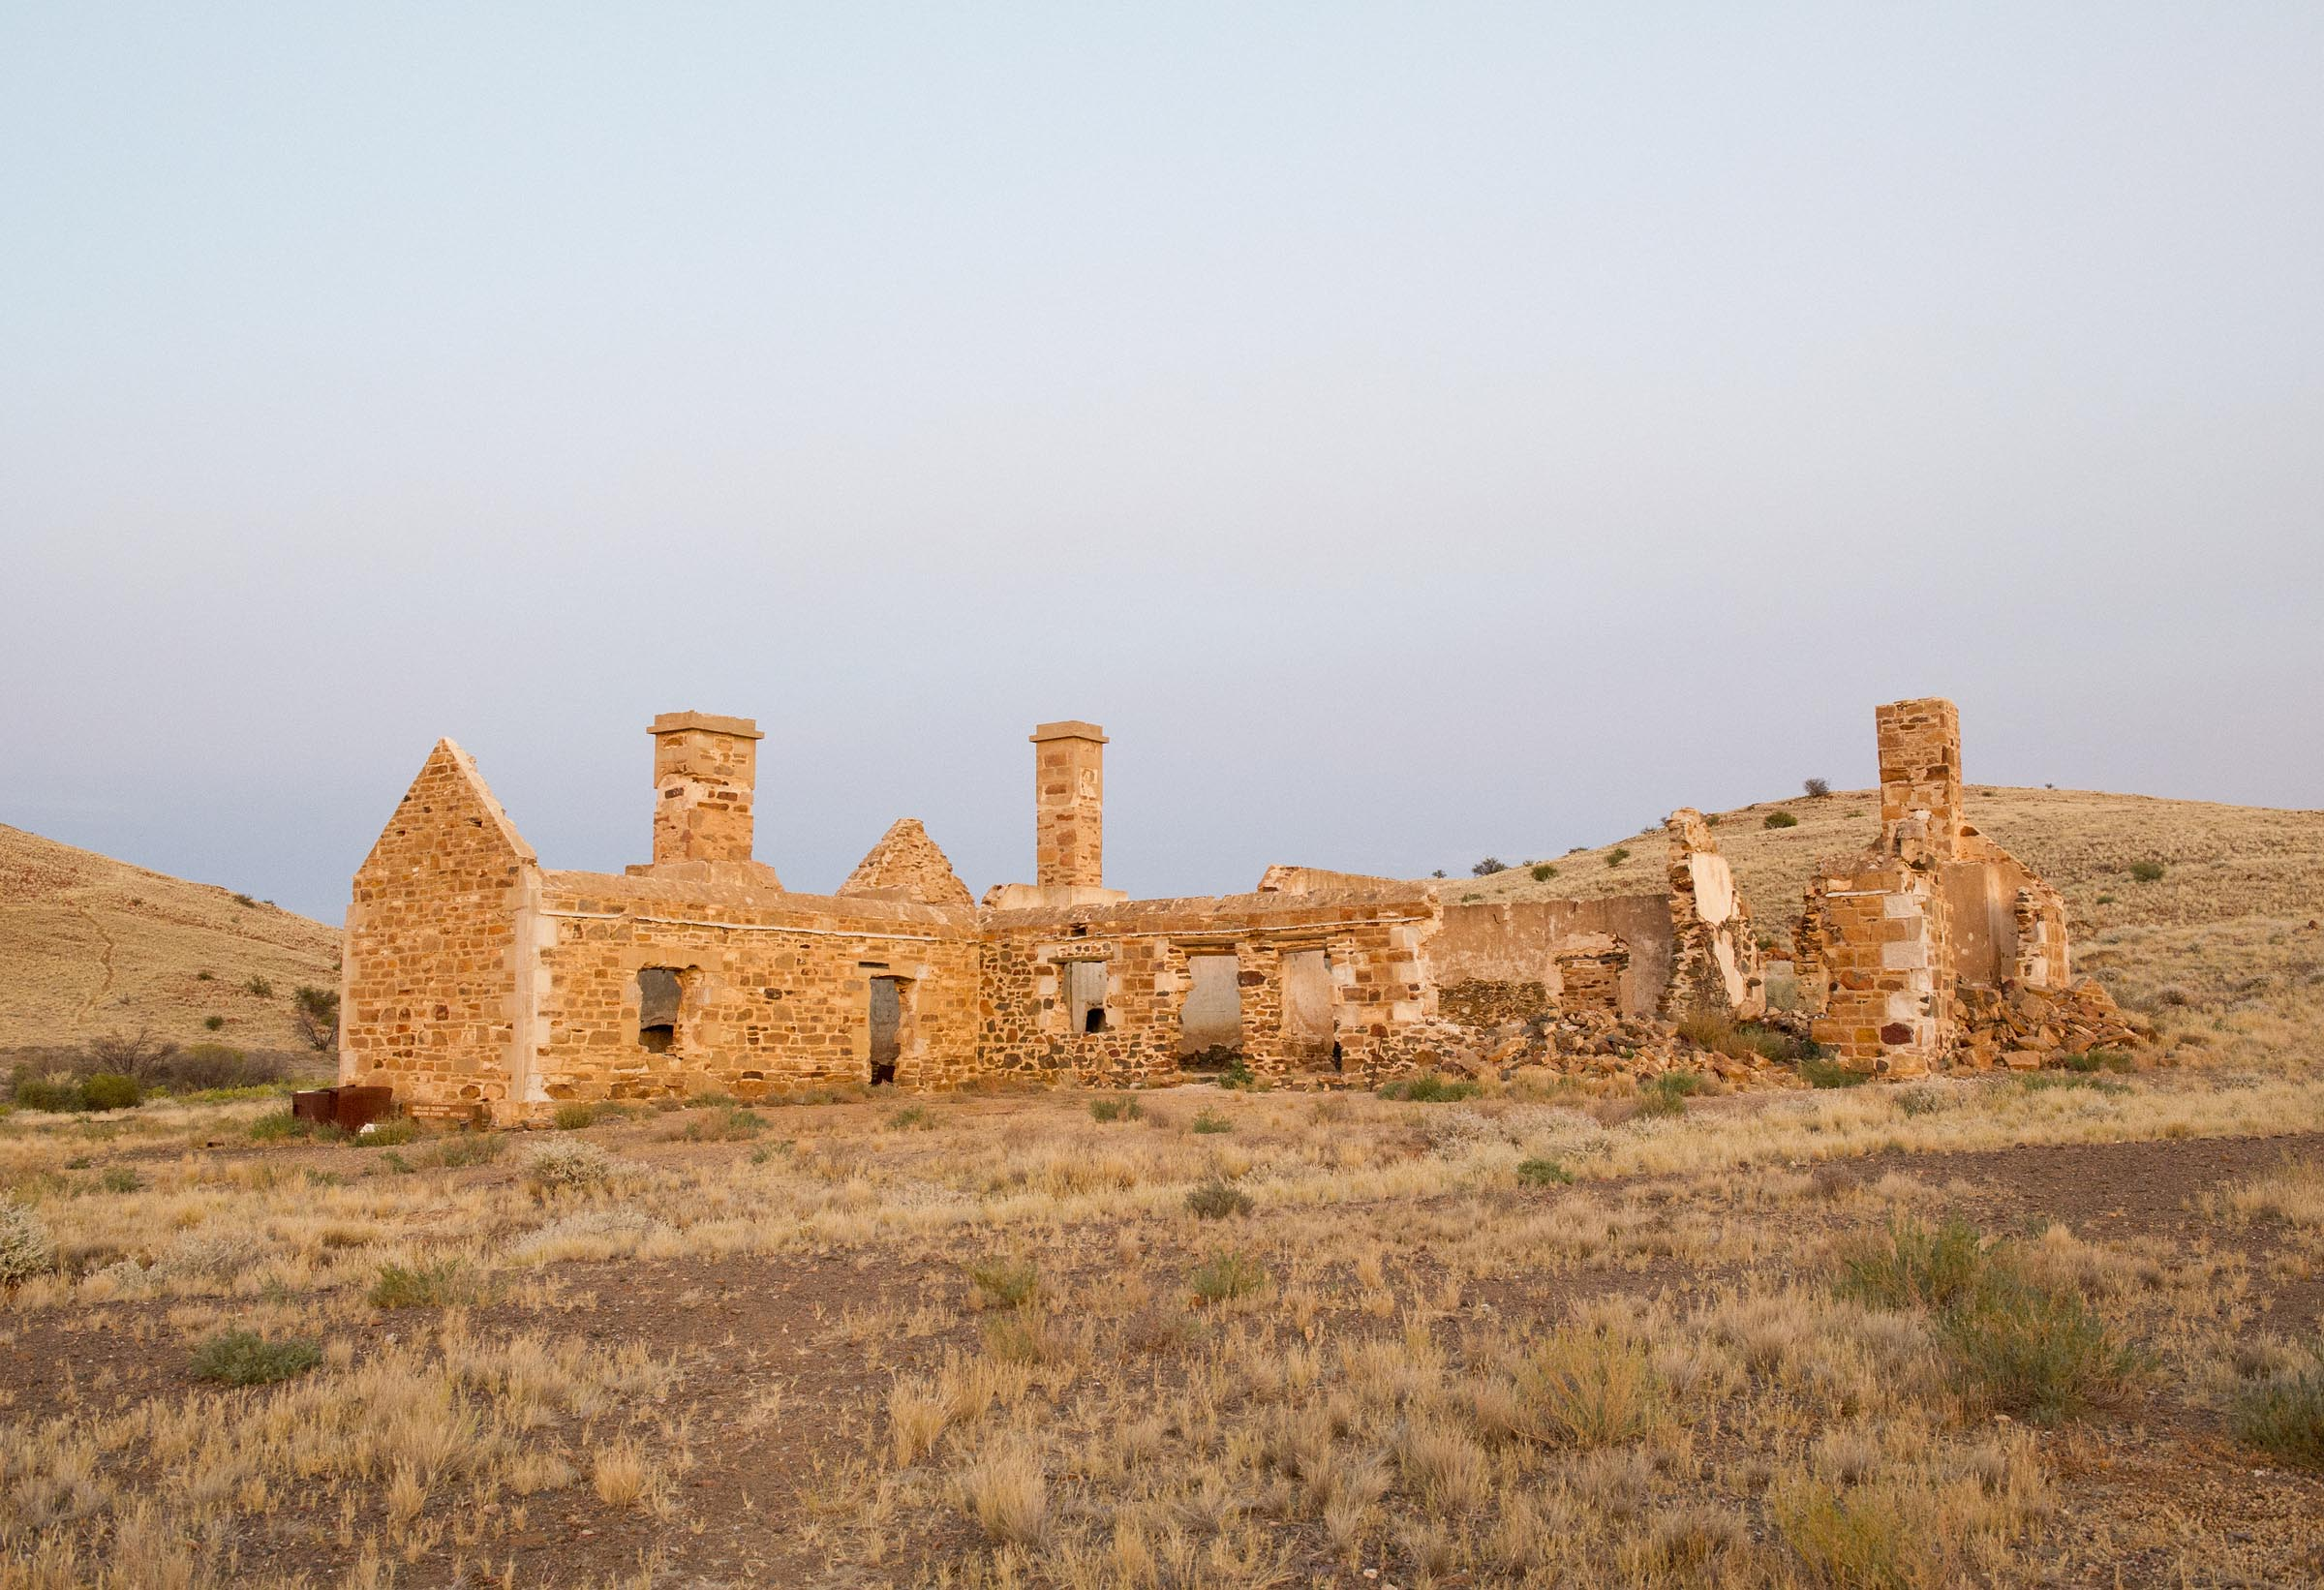 19th century Outback Telegraph Station